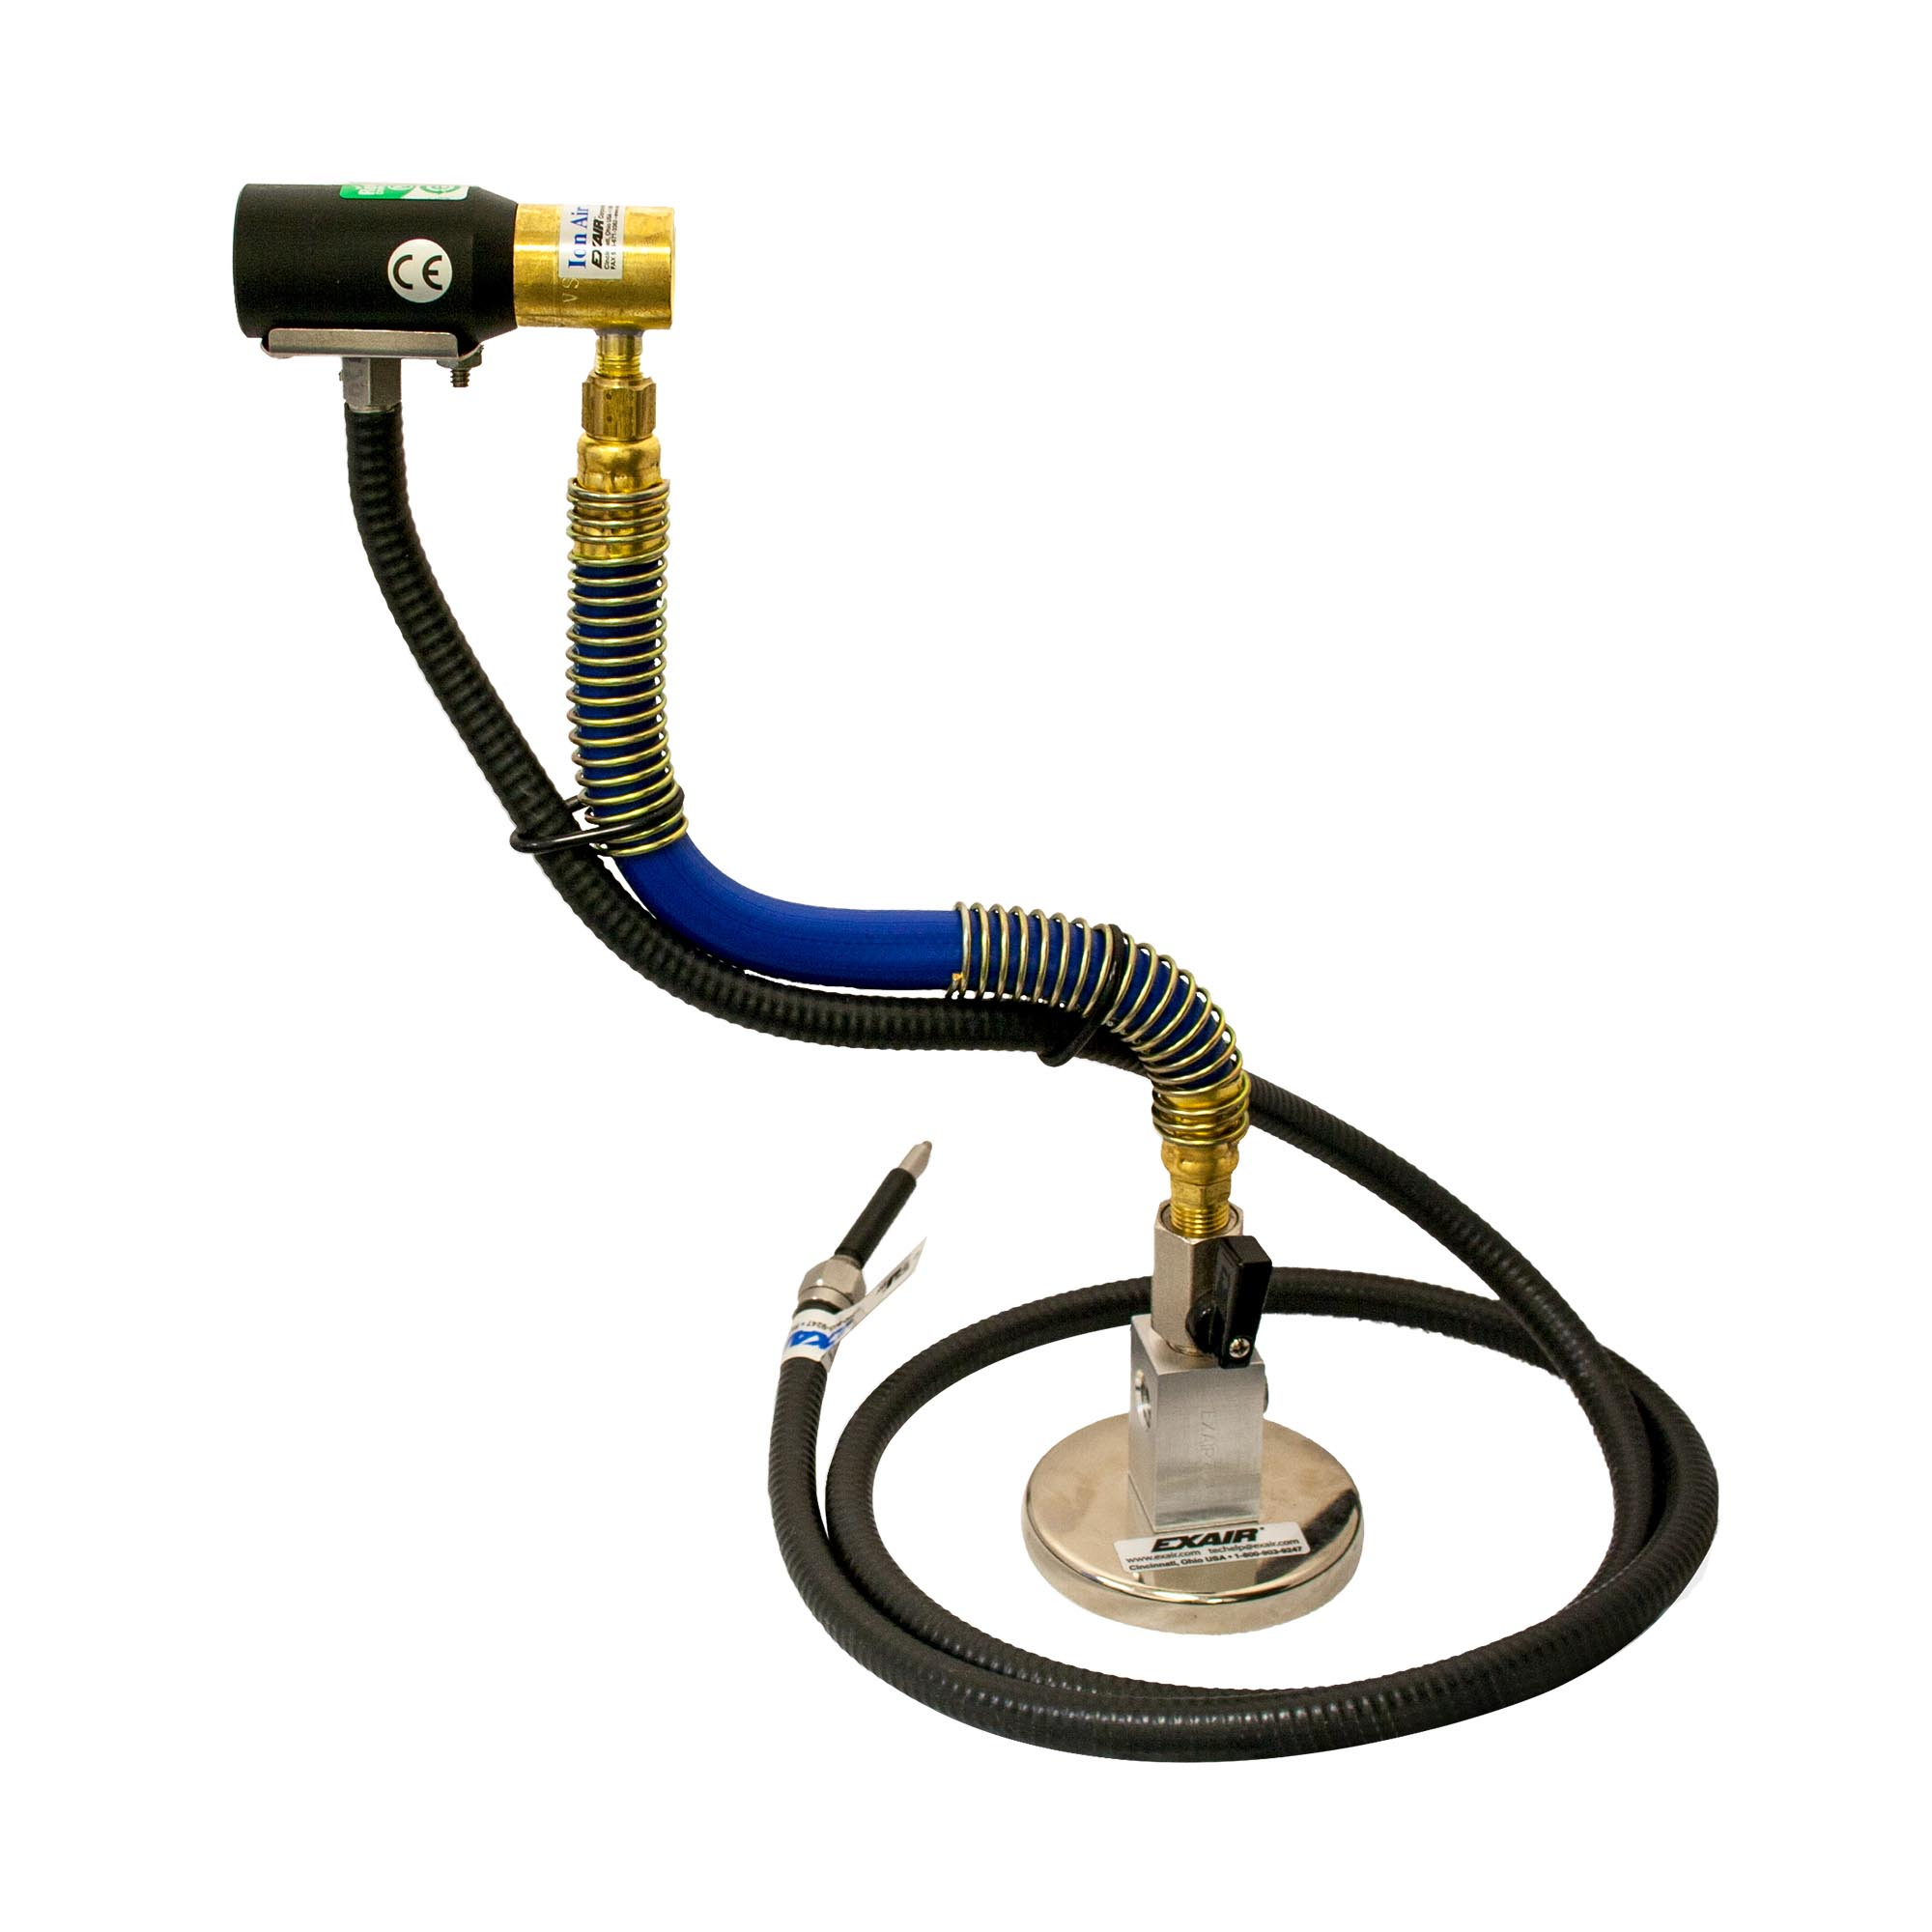 The Gen4 Stay Set Ion Air Jet is an option which provides a magnetic base for mounting and a Stay Set Hose for positioning the Ion Air Jet.